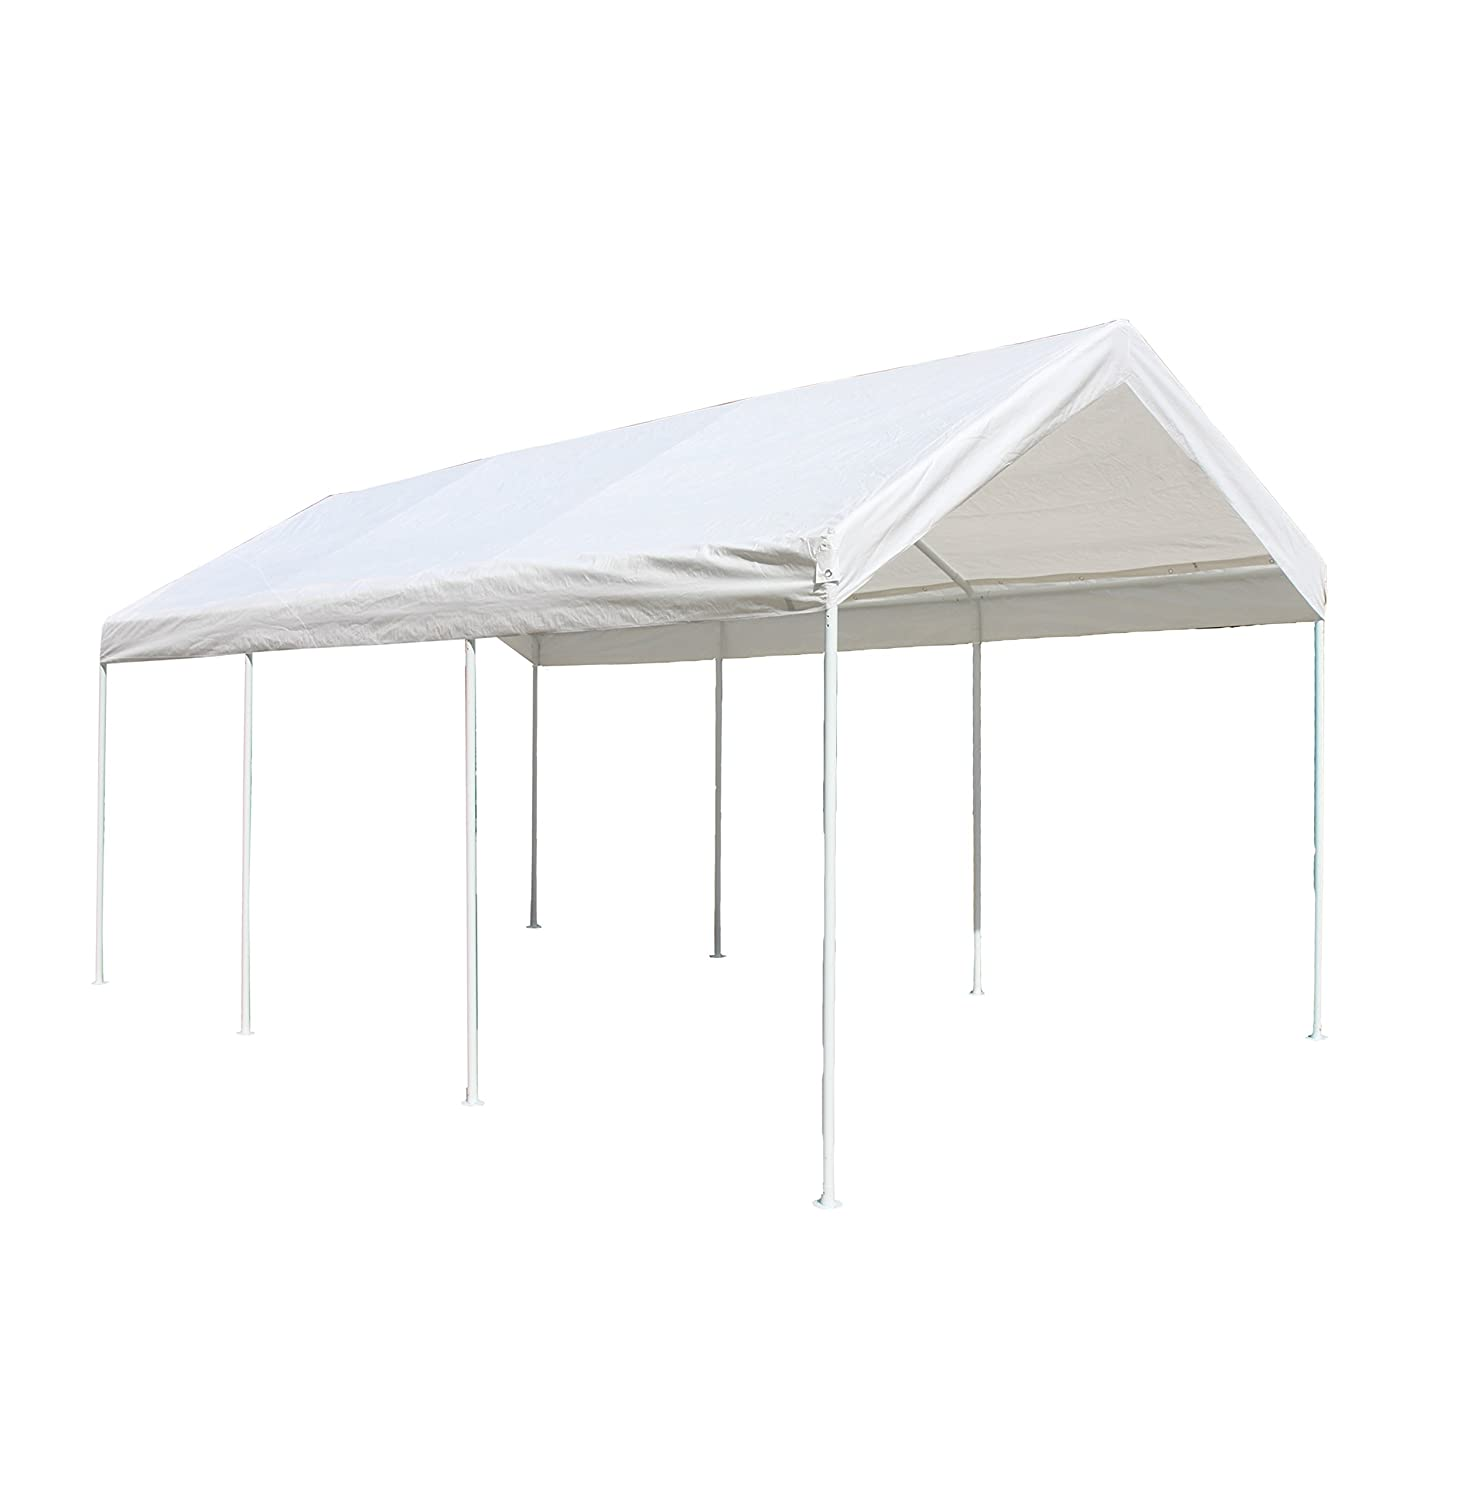 ALEKO CP1020NS Outdoor Event Carport Garage Canopy Tent Shelter Storage 10 x 20 x 8.5 Feet White